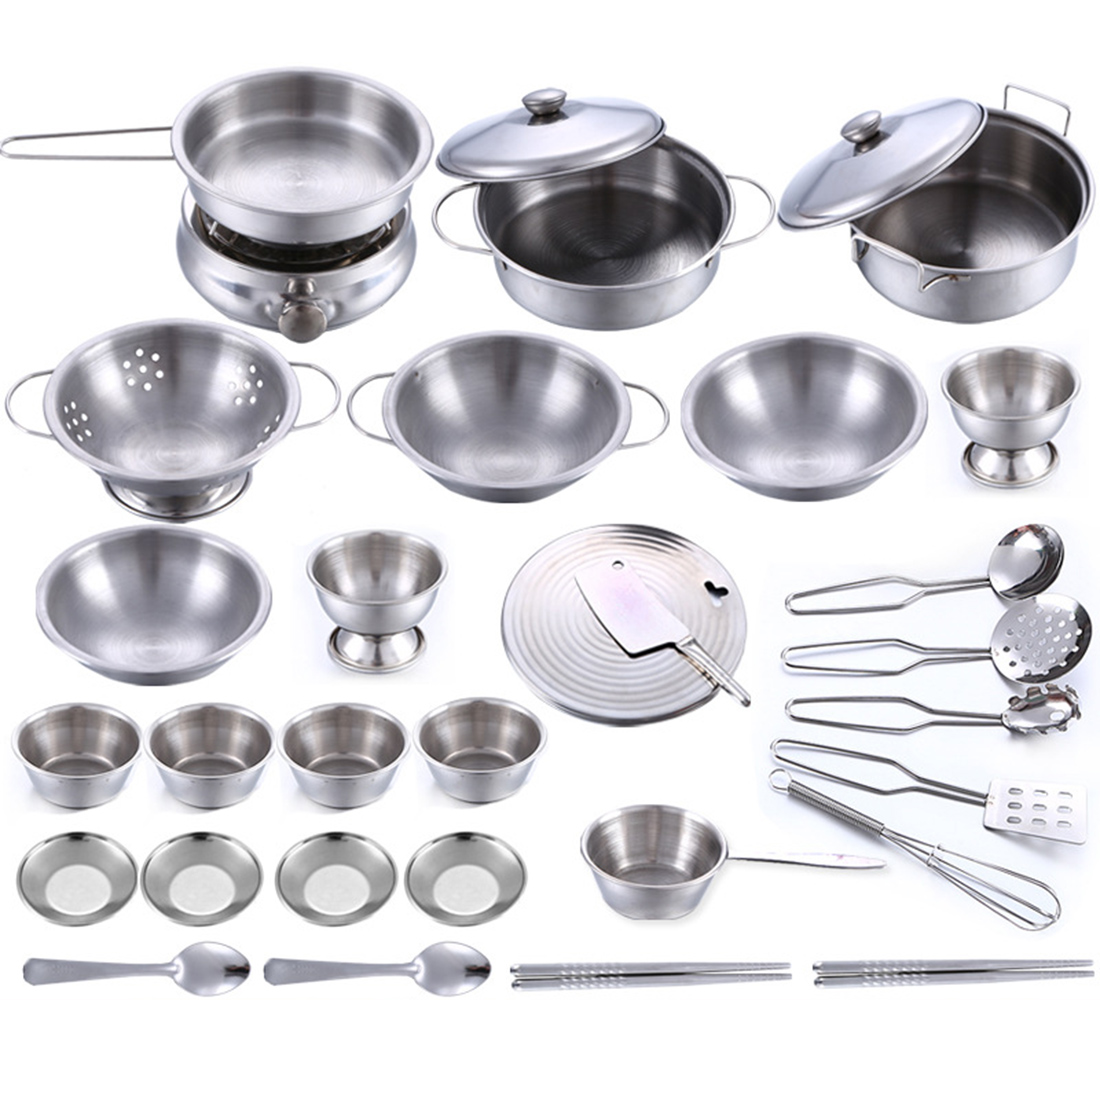 16/25/32Pcs Stainless Steel Children Kitchen Toys Miniature Cooking Set Simulation Tableware Toy Pretend Cook Toy For Kids Gift